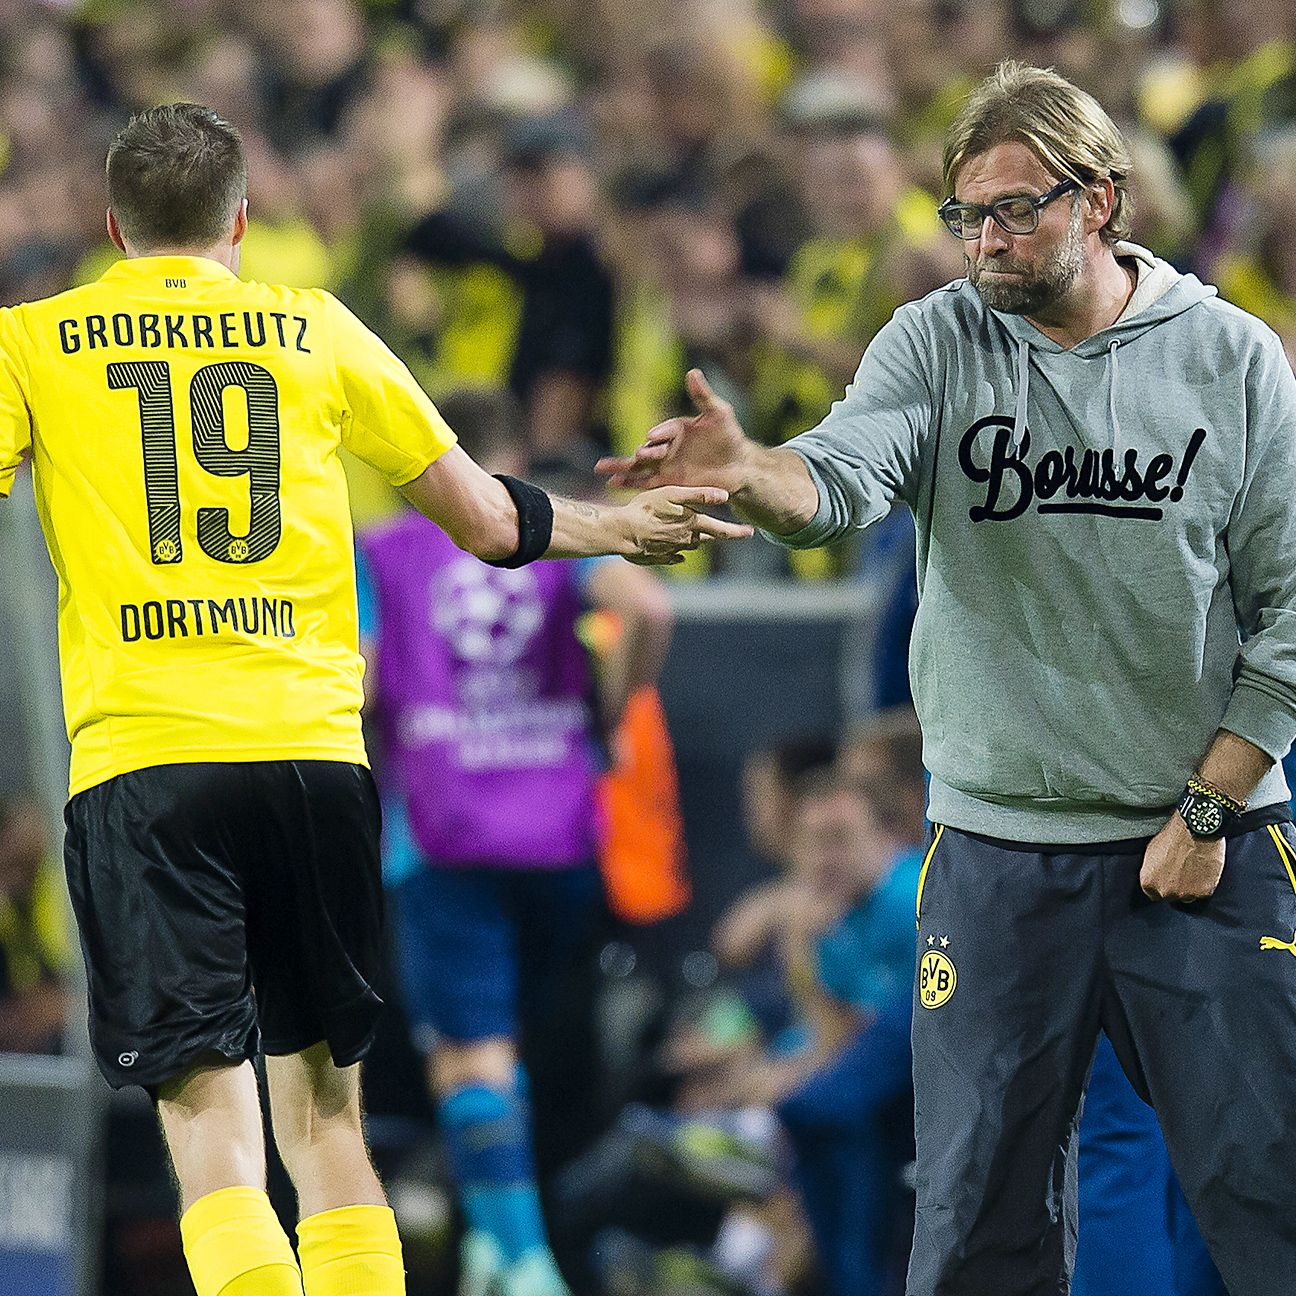 Jurgen Klopp's Borussia Dortmund are finding their form.